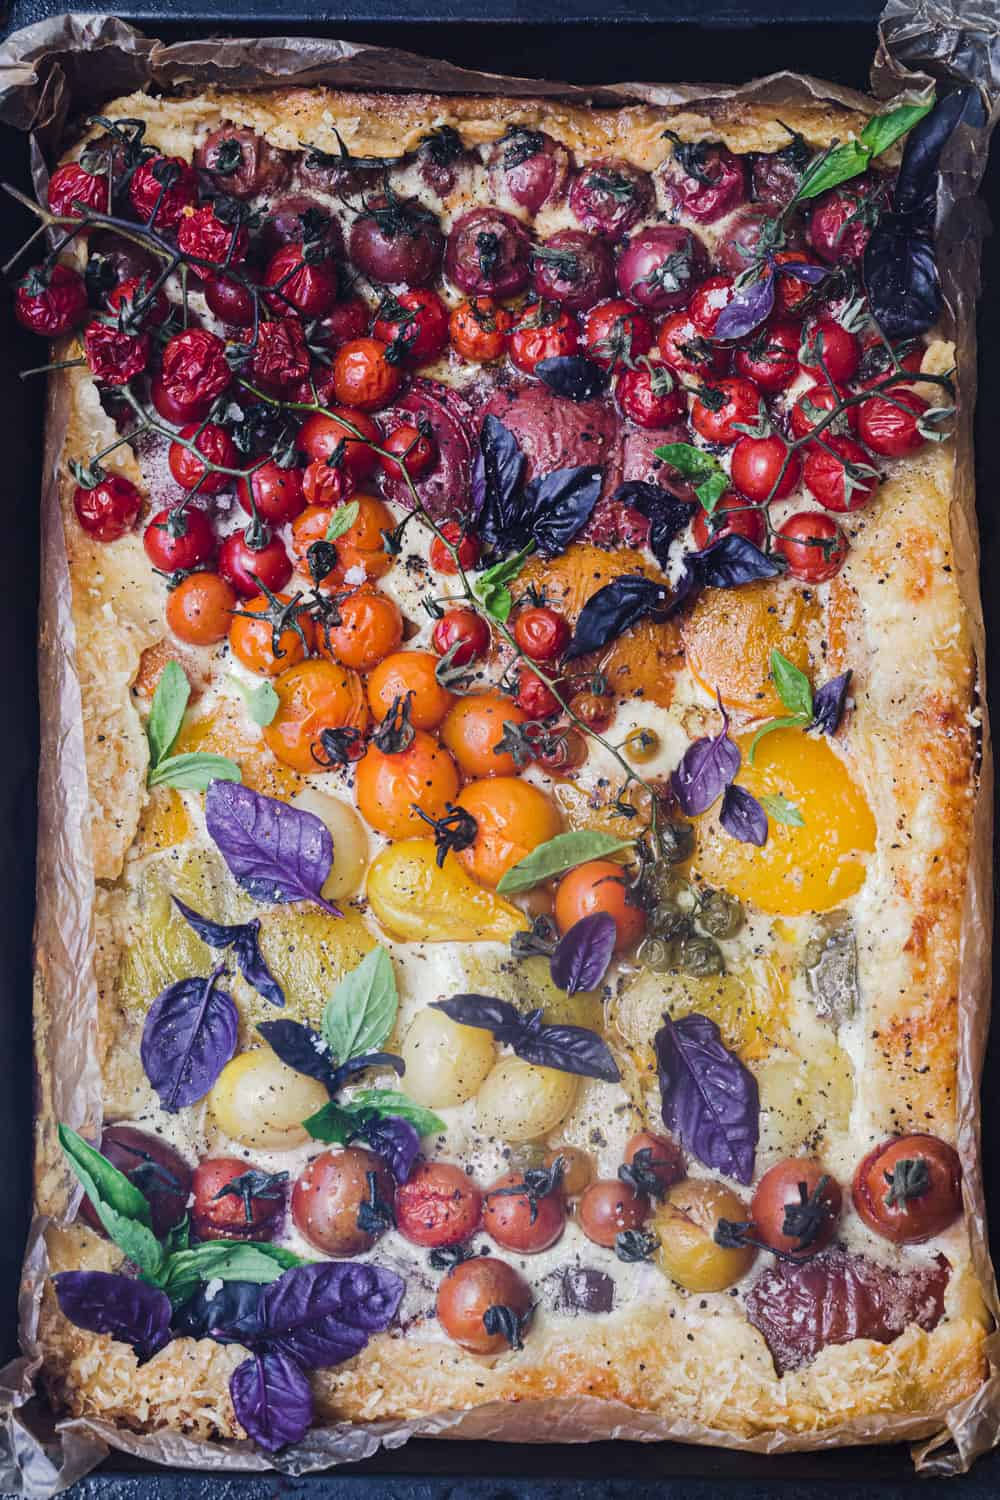 Heirloom tomato tart post oven and topped with purple basil! The topping create a tomato rainbow!